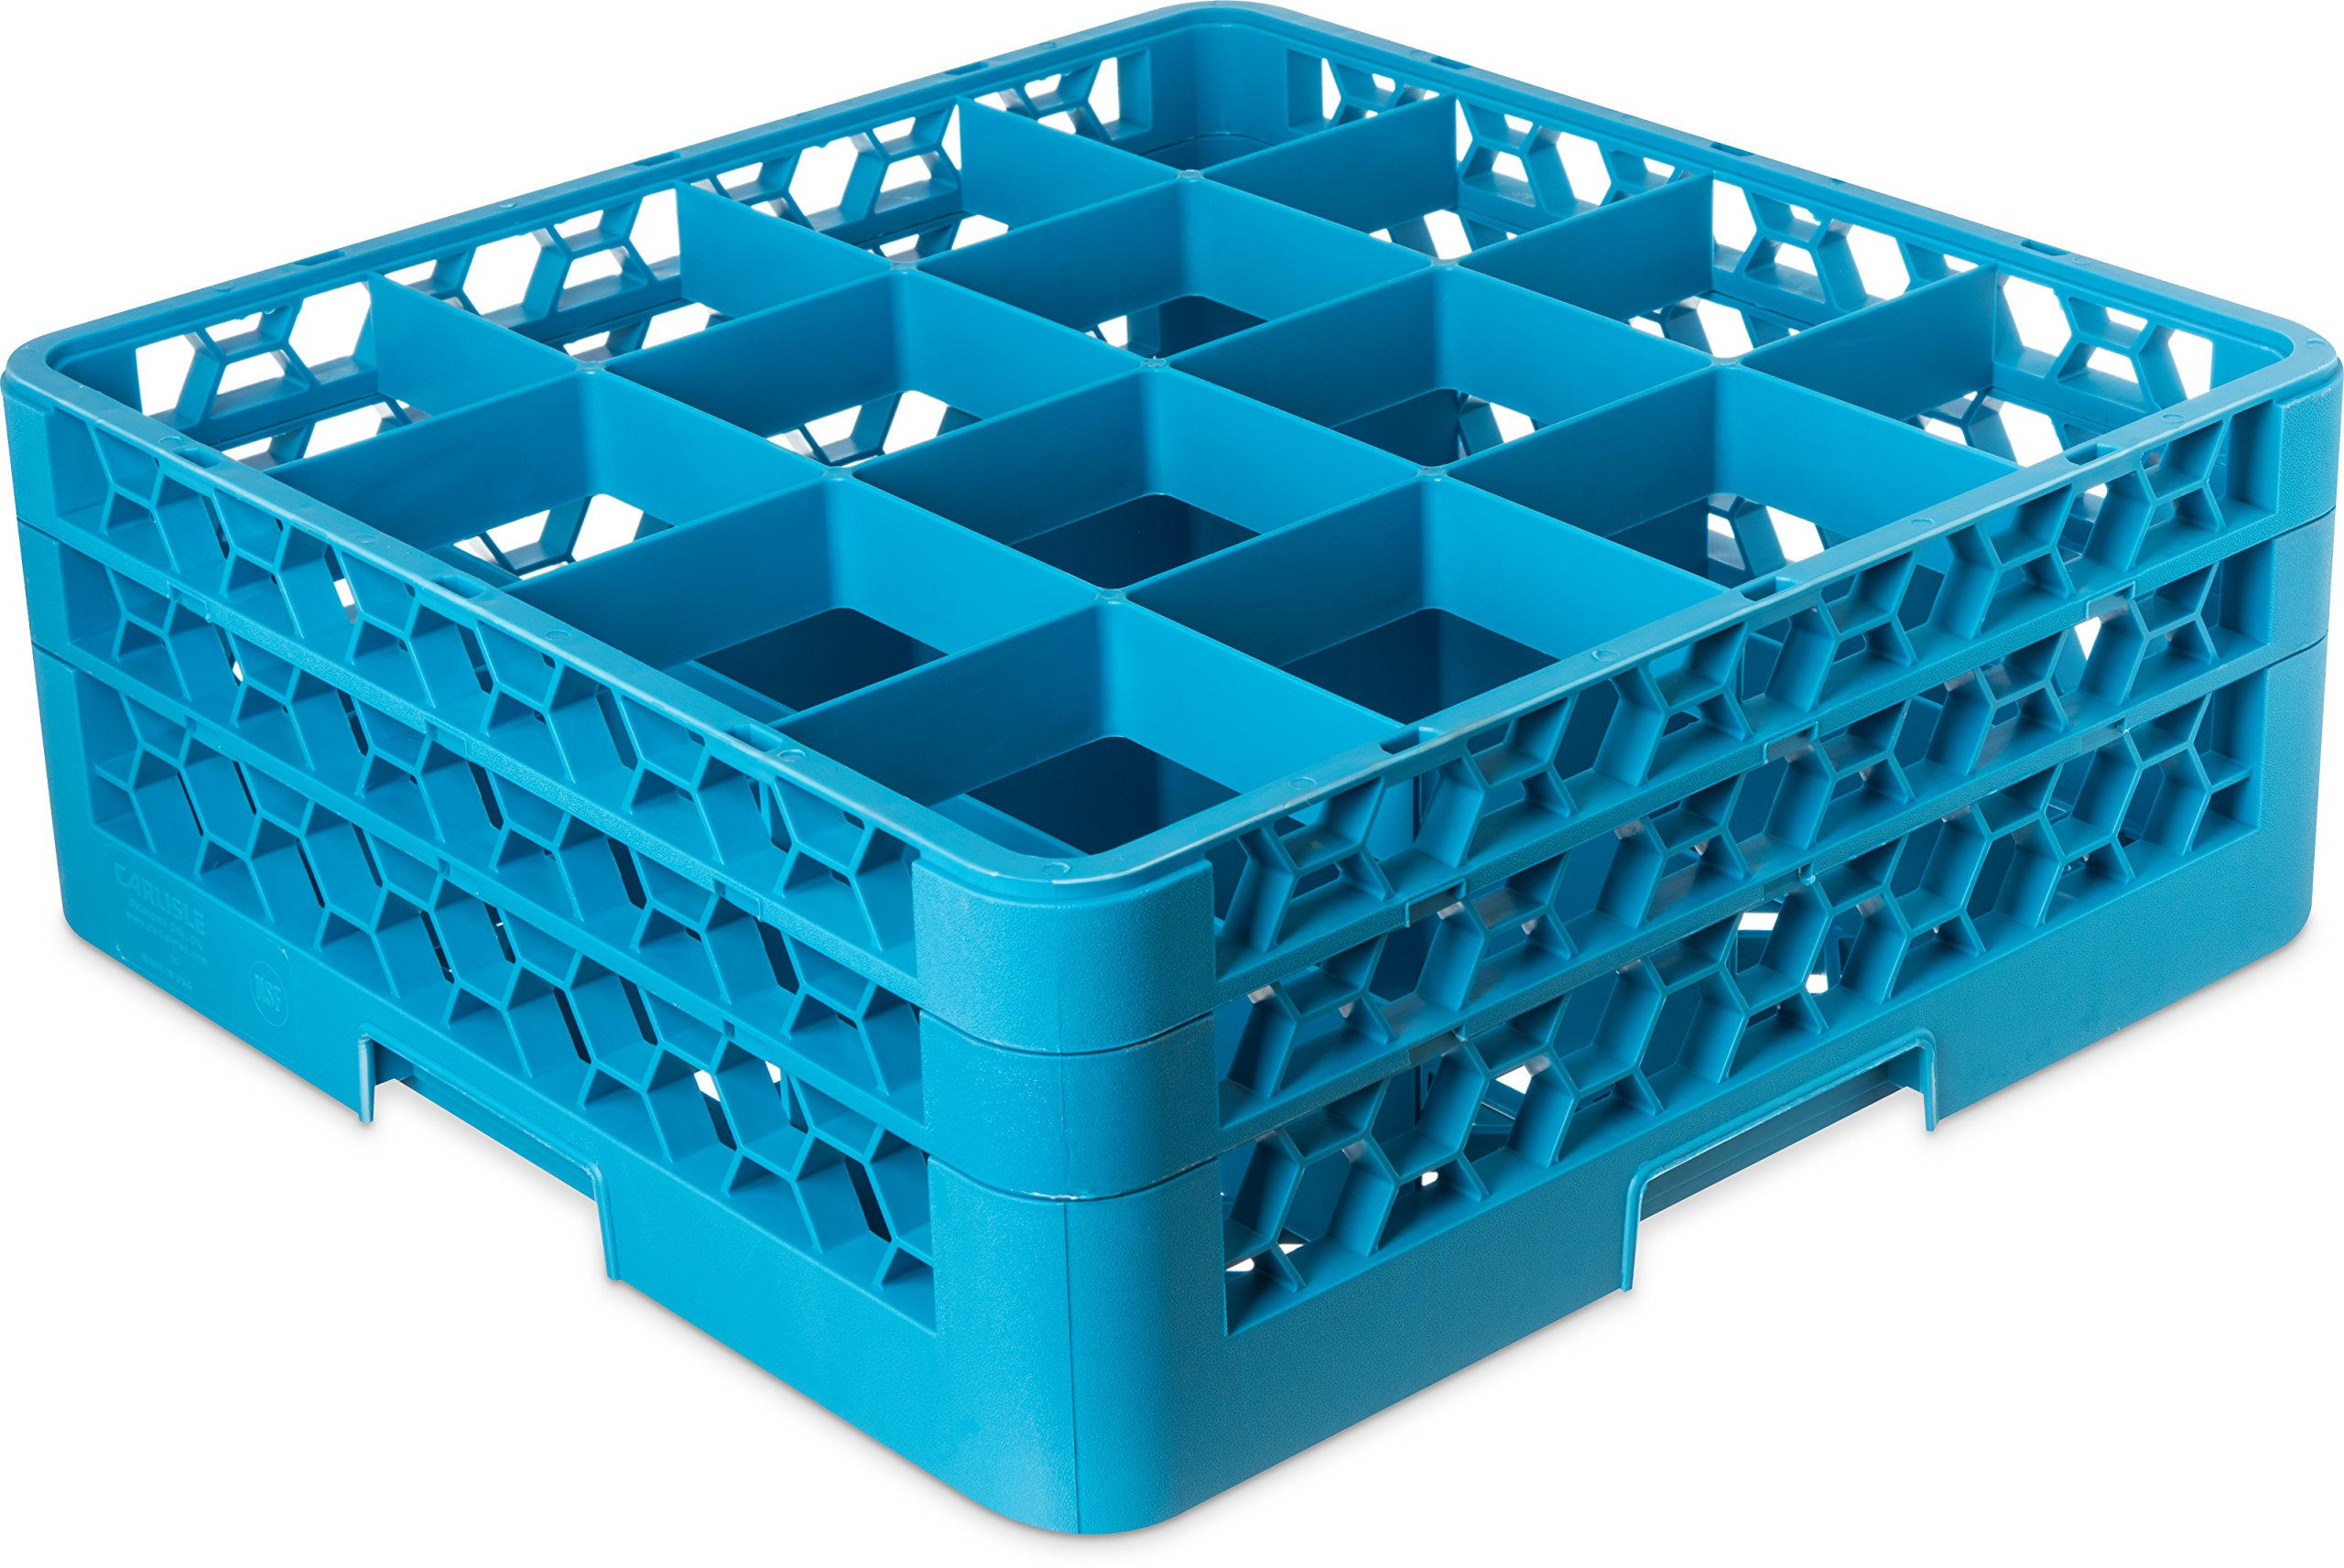 Carlisle RG16-214 OptiClean 16 Compartment Glass Rack with 2 Extenders, 4-7/16'' Compartments, Blue (Pack of 3) by Carlisle